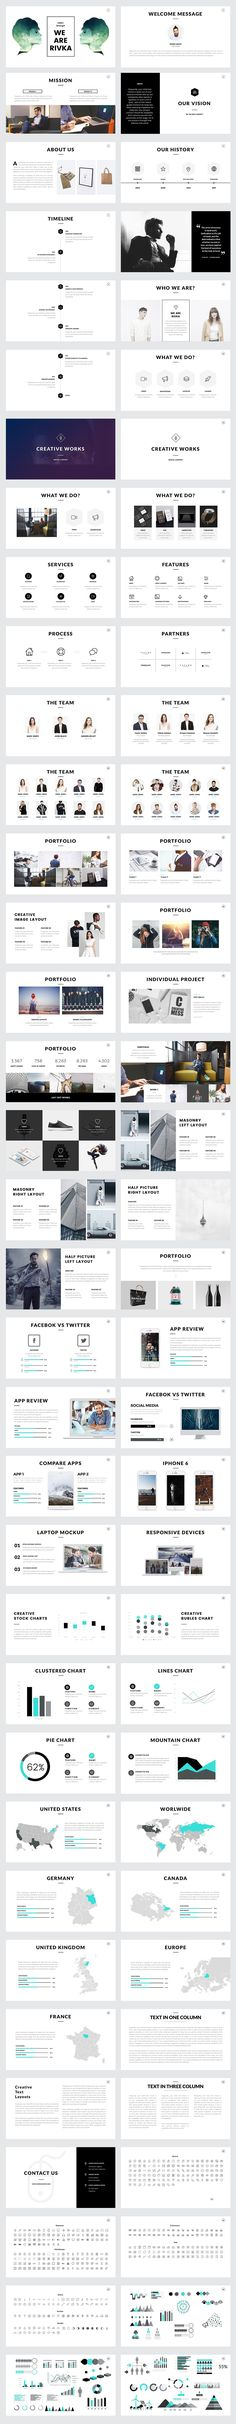 Minimalistic presentation template perfect for course-selling bloggers and entrepreneurs | Rivka Minimal Keynote Template by Slidedizer on @creativemarket #affiliate